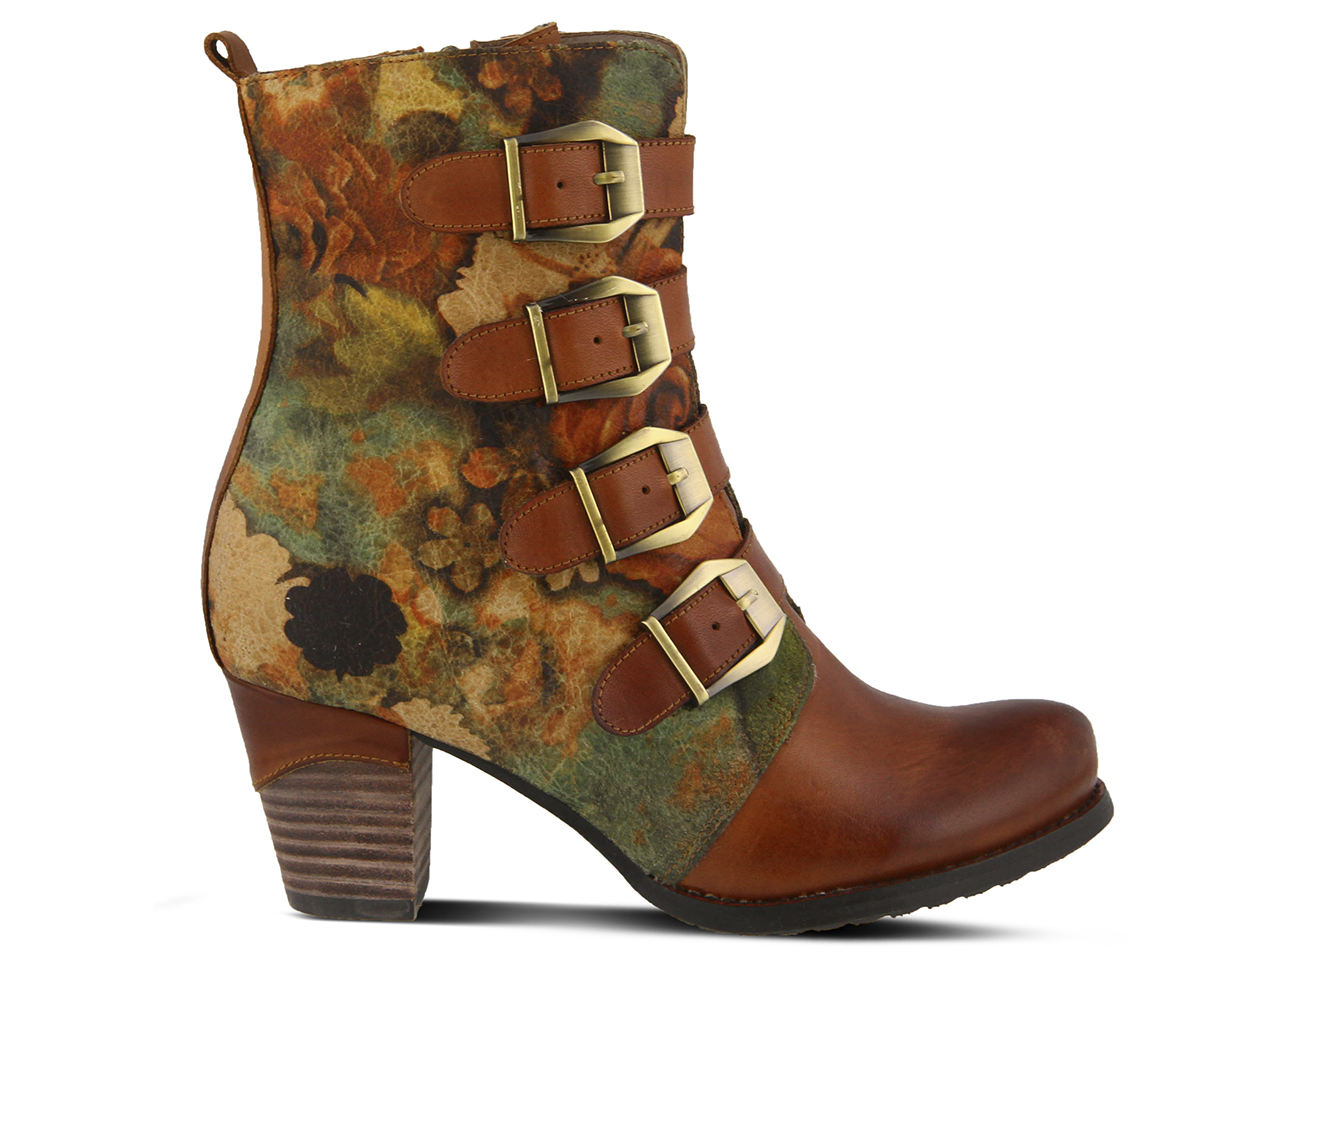 L'Artiste Lahae Women's Boots (Brown - Leather)